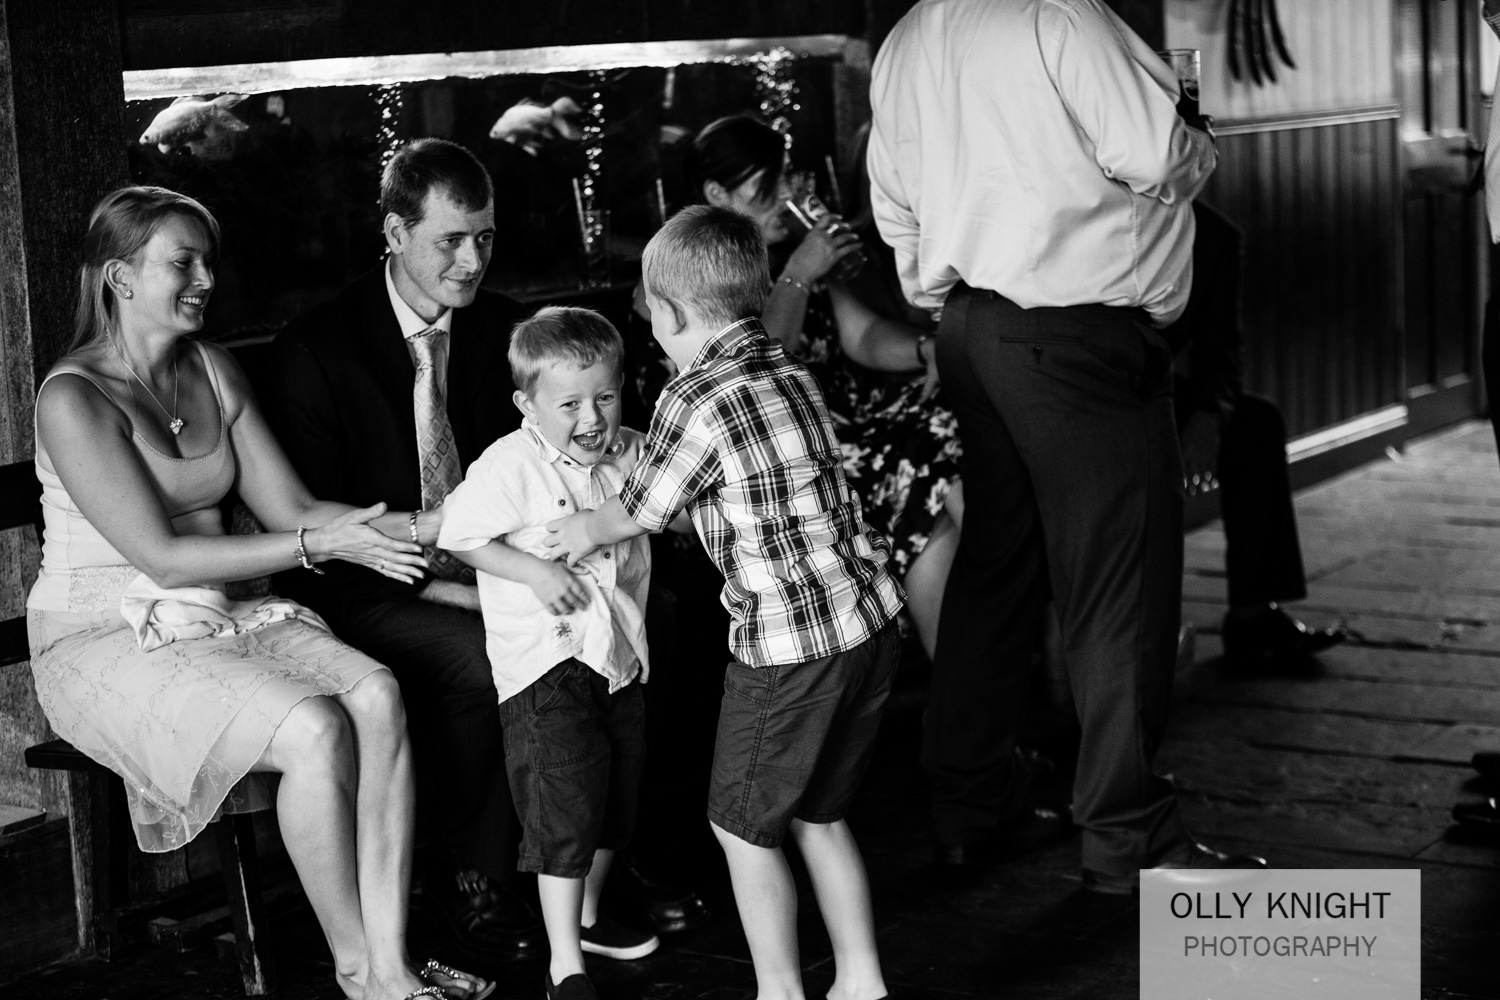 Andy & Louise's Wedding at East Quay Lobster Shack in Whitstable - Olly Knight